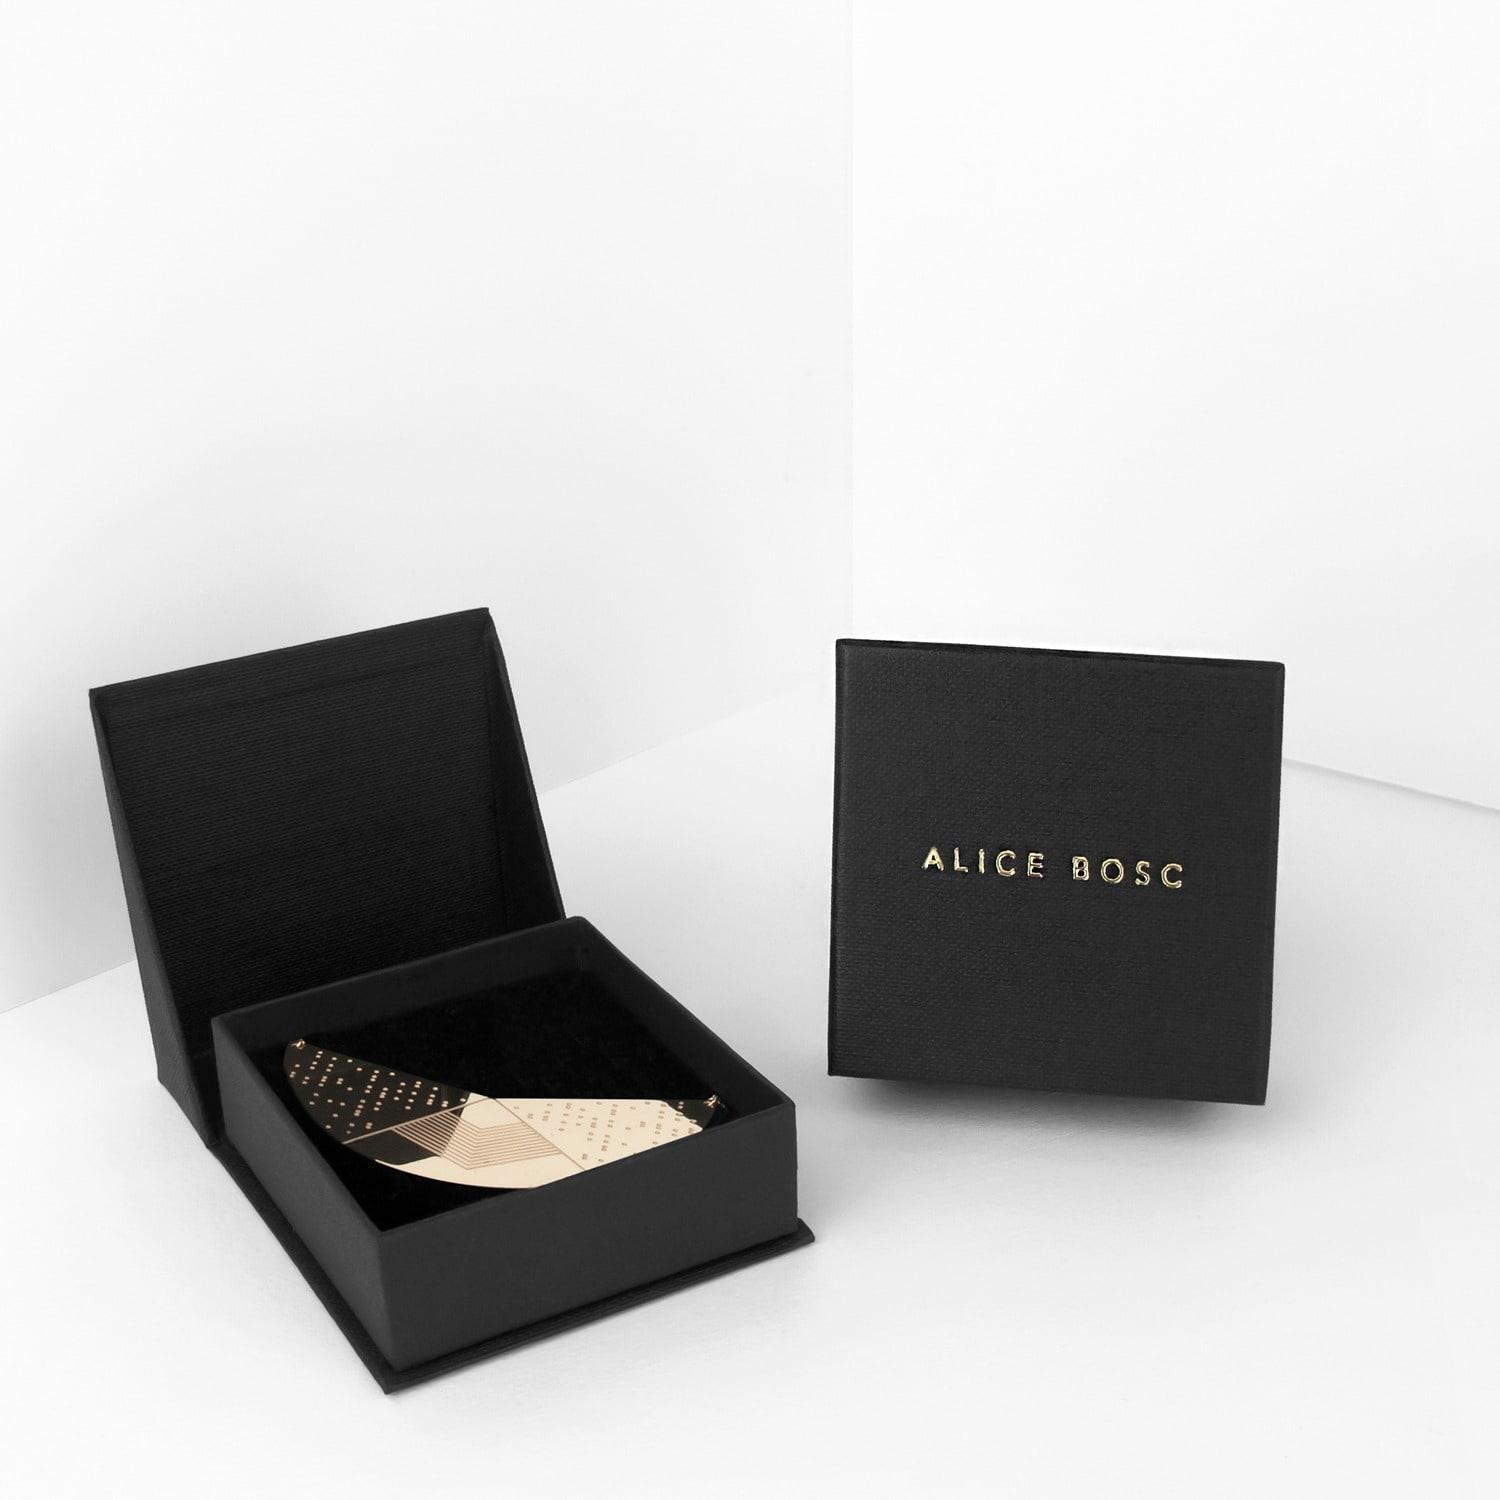 Alice bosc clay rose gold lyst for Tj maxx jewelry box